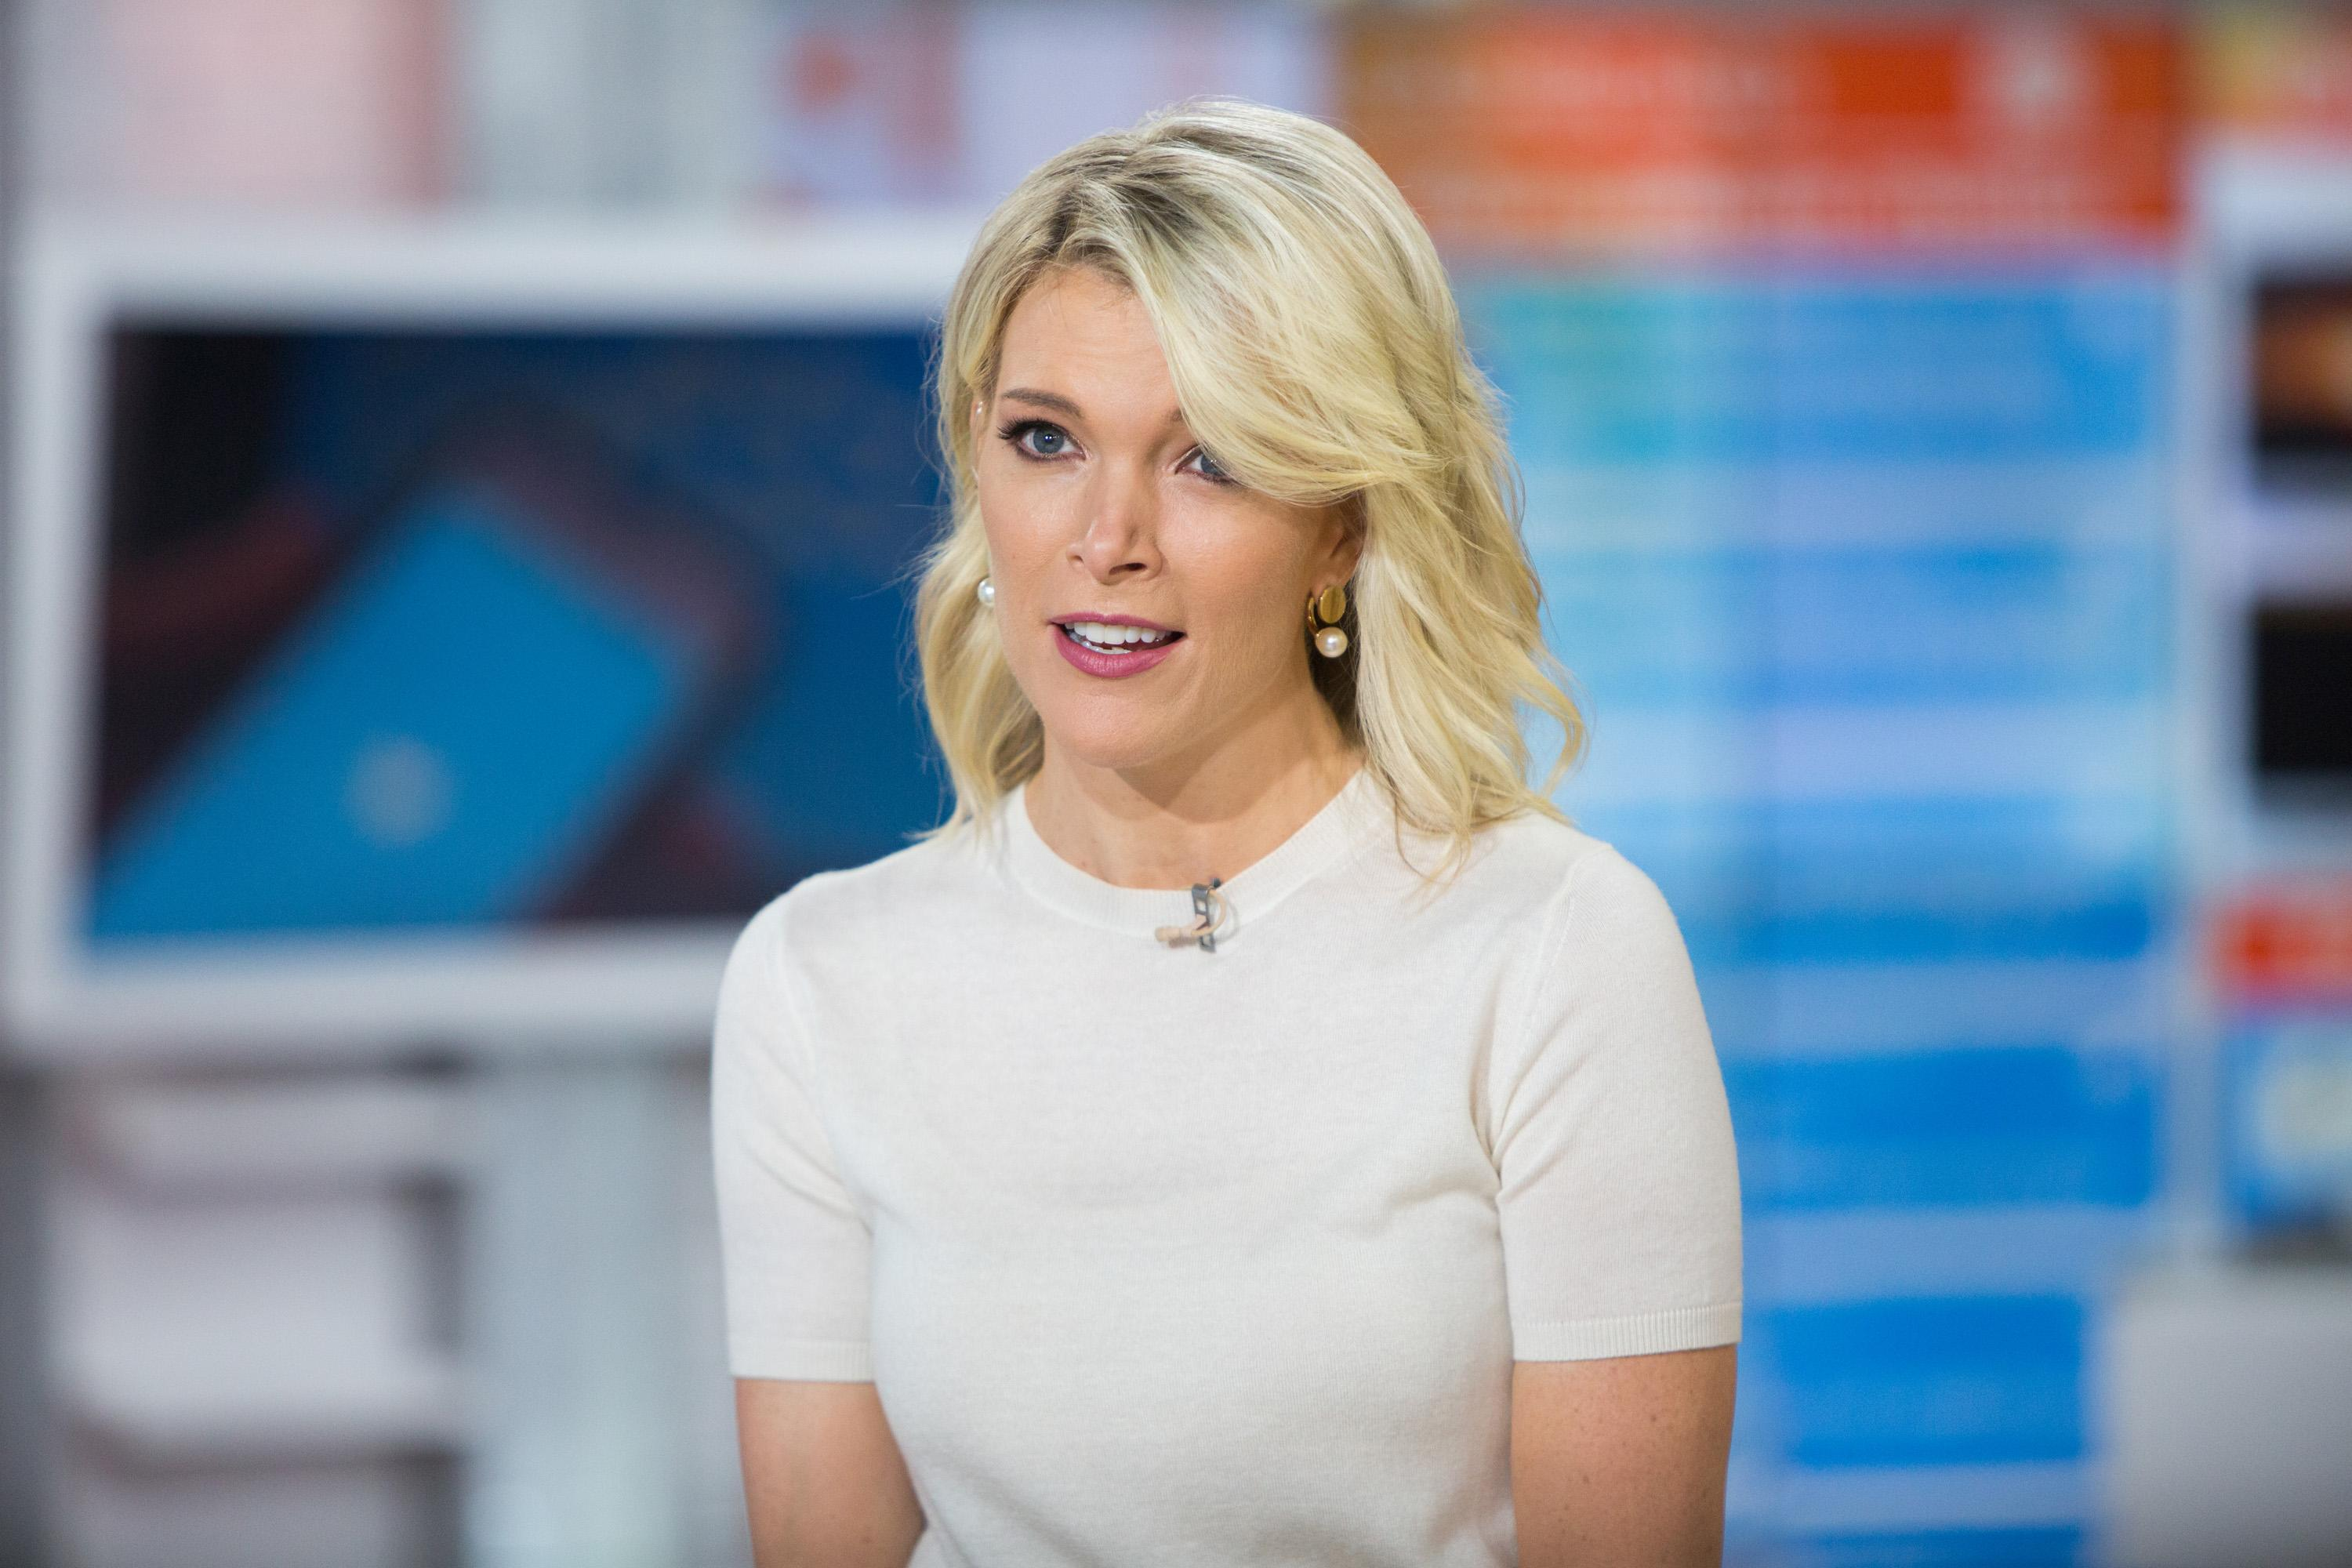 Megyn Kelly says a focus on multisegment interviews about emotionally wrenching social issues will help her NBC show stand out in the AM